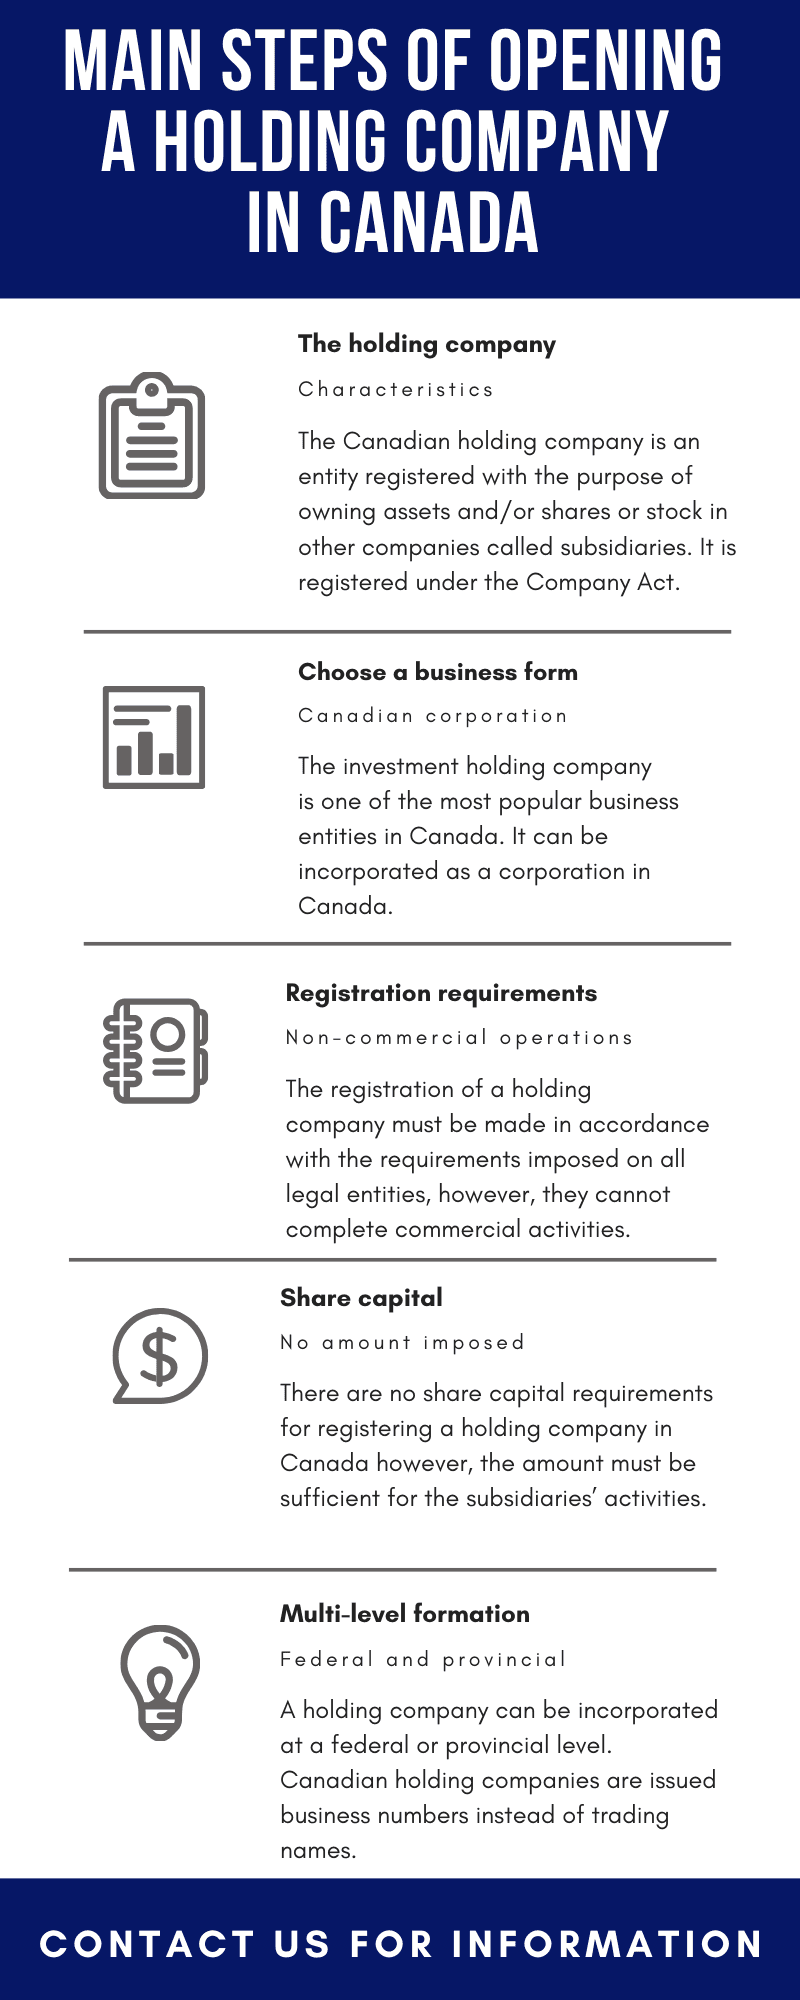 Main steps of opening a holding company in Canada